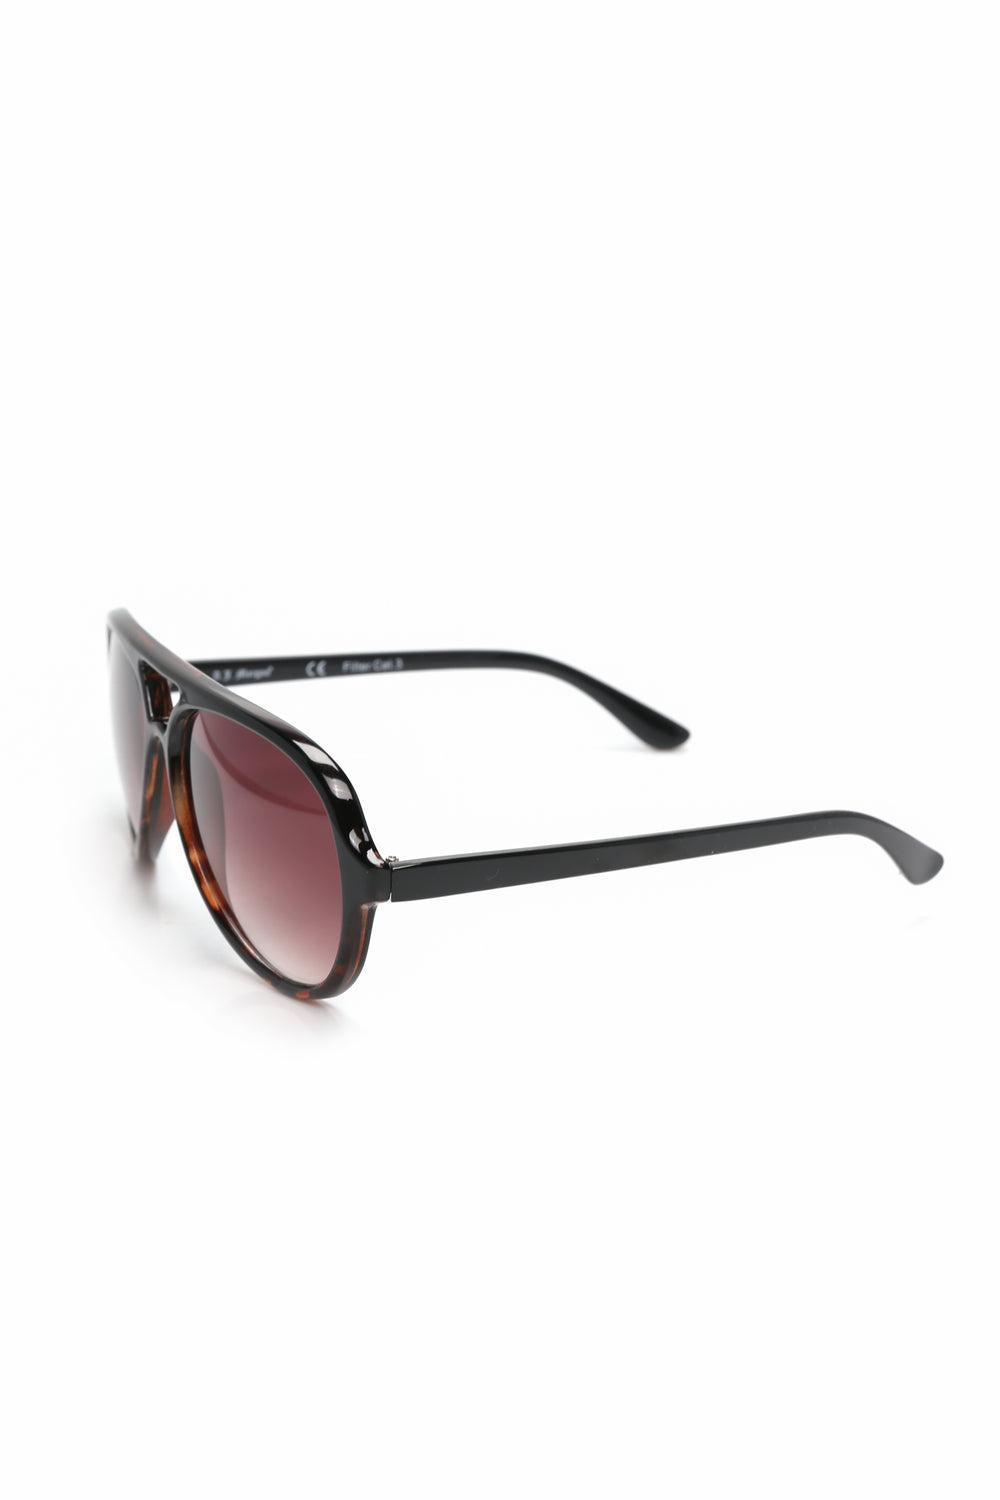 Star Struck Sunglasses - Tortoise